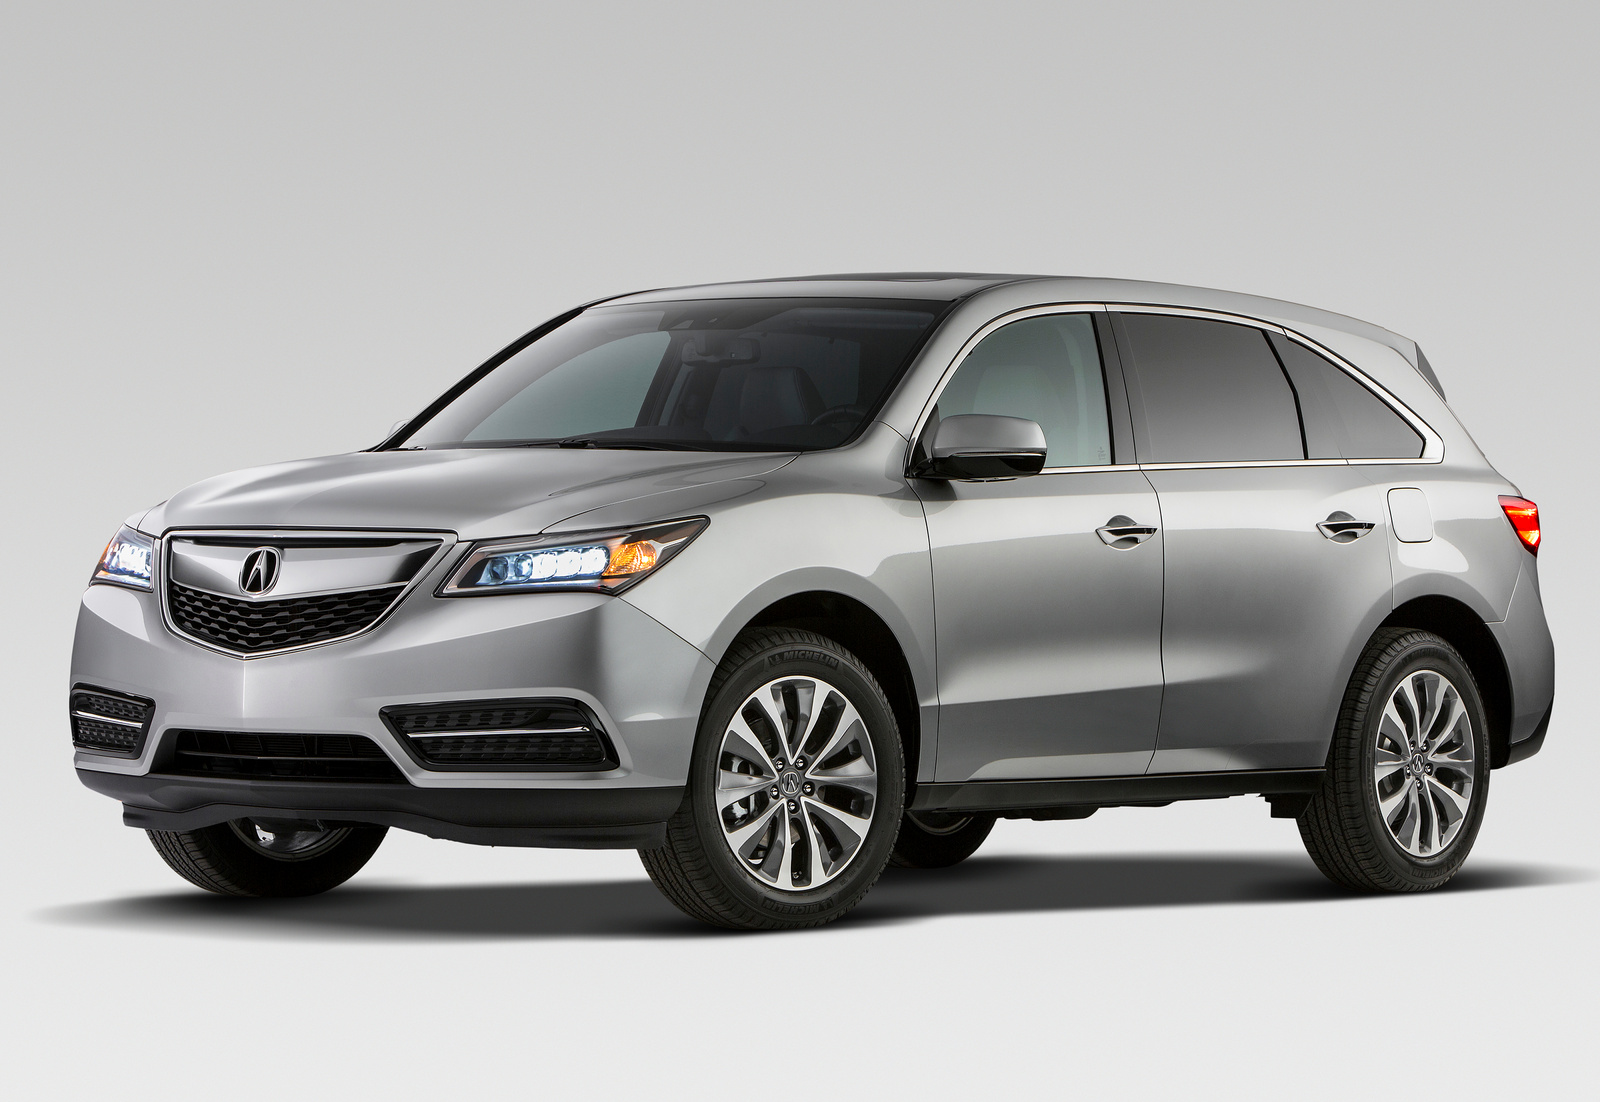 2014 acura mdx test drive review cargurus. Black Bedroom Furniture Sets. Home Design Ideas